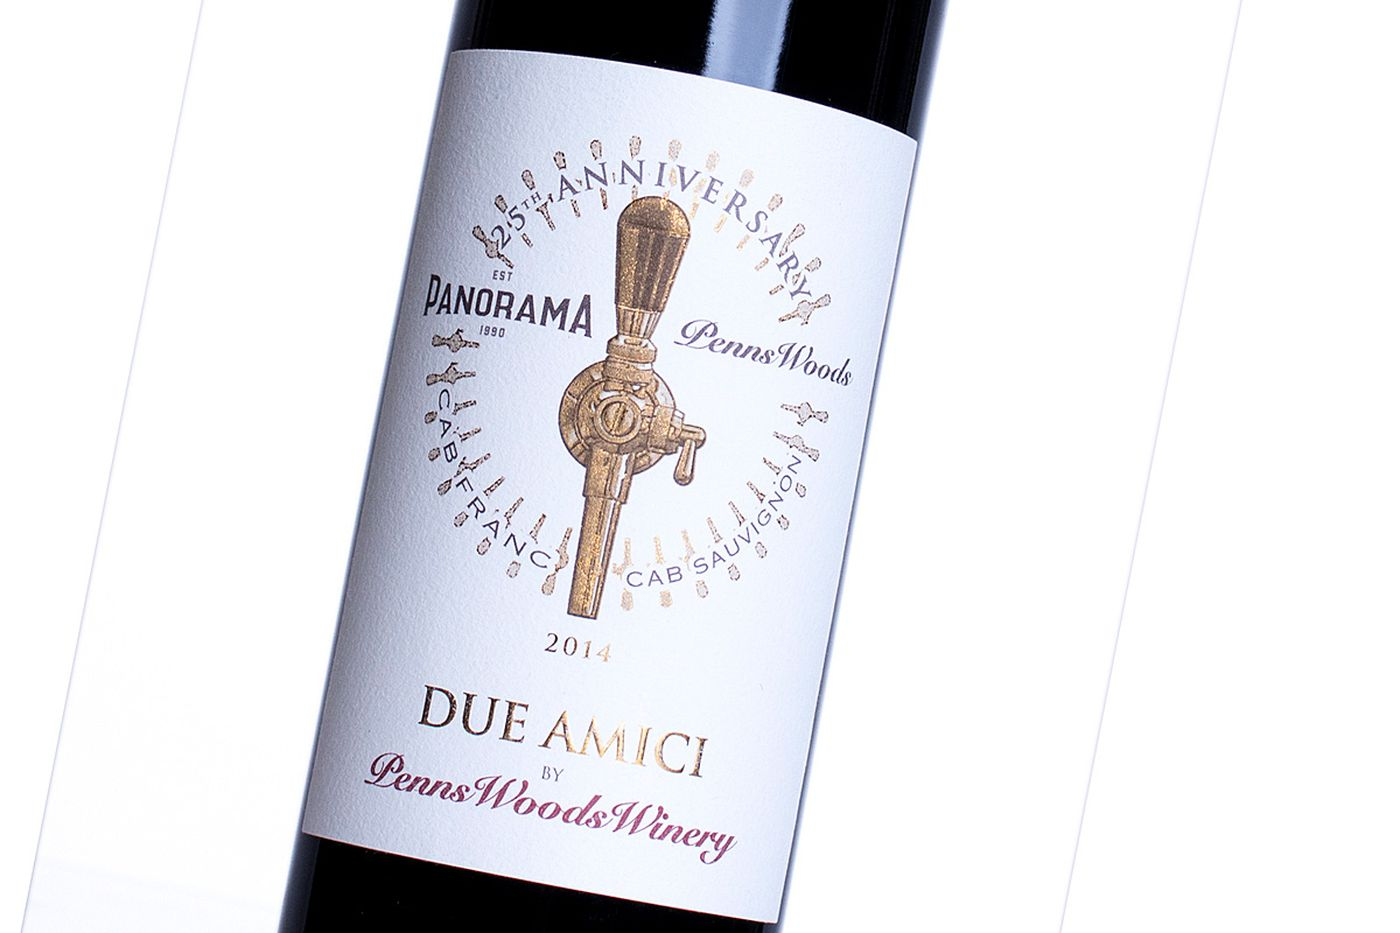 Drink: Due Amici at Panorama